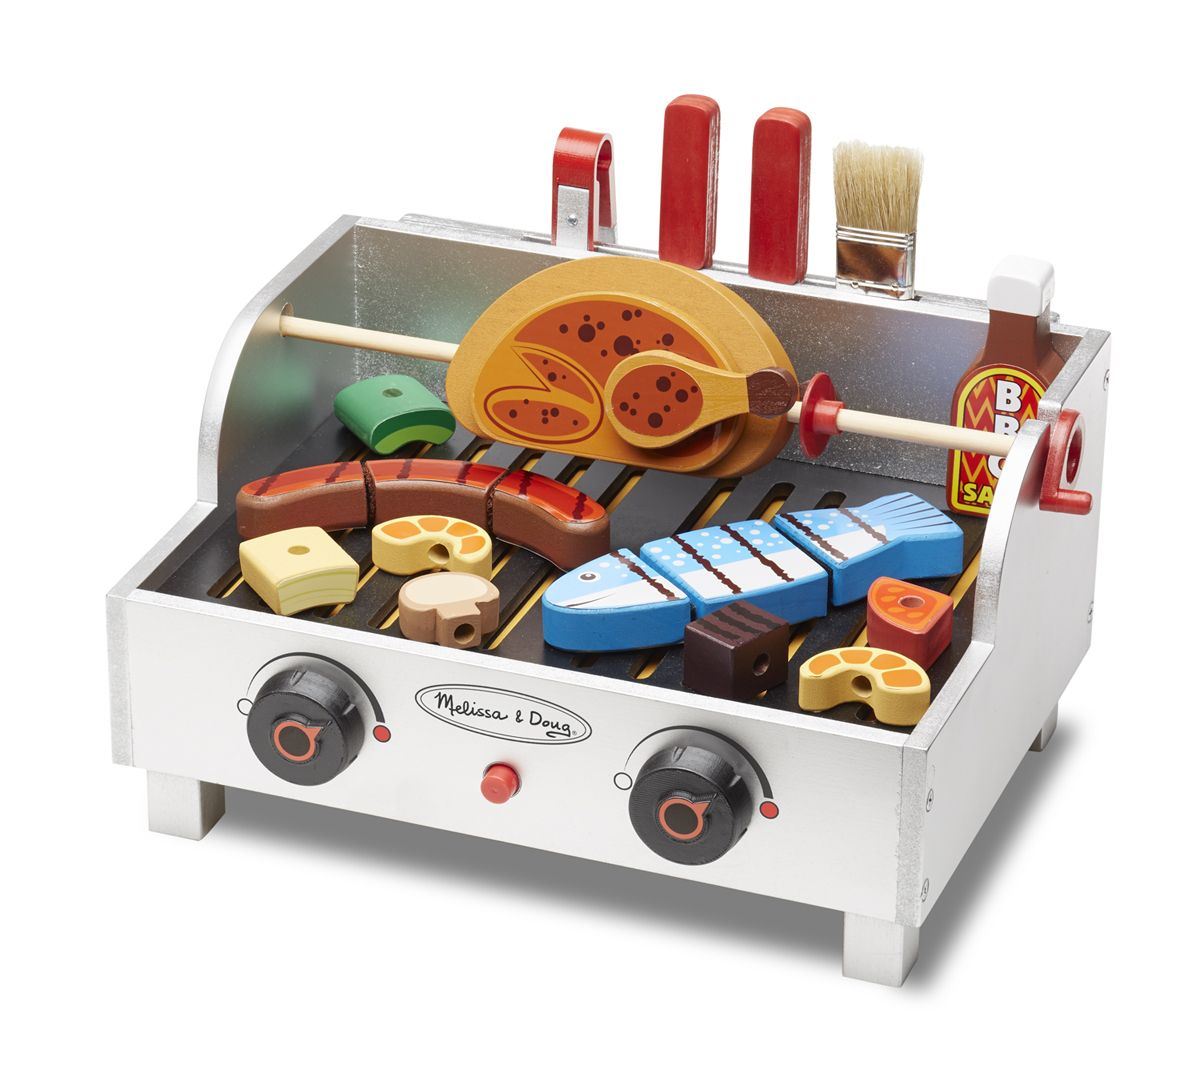 rotisserie grill barbecue set kitchens kitchenware and more melissa and doug wooden. Black Bedroom Furniture Sets. Home Design Ideas